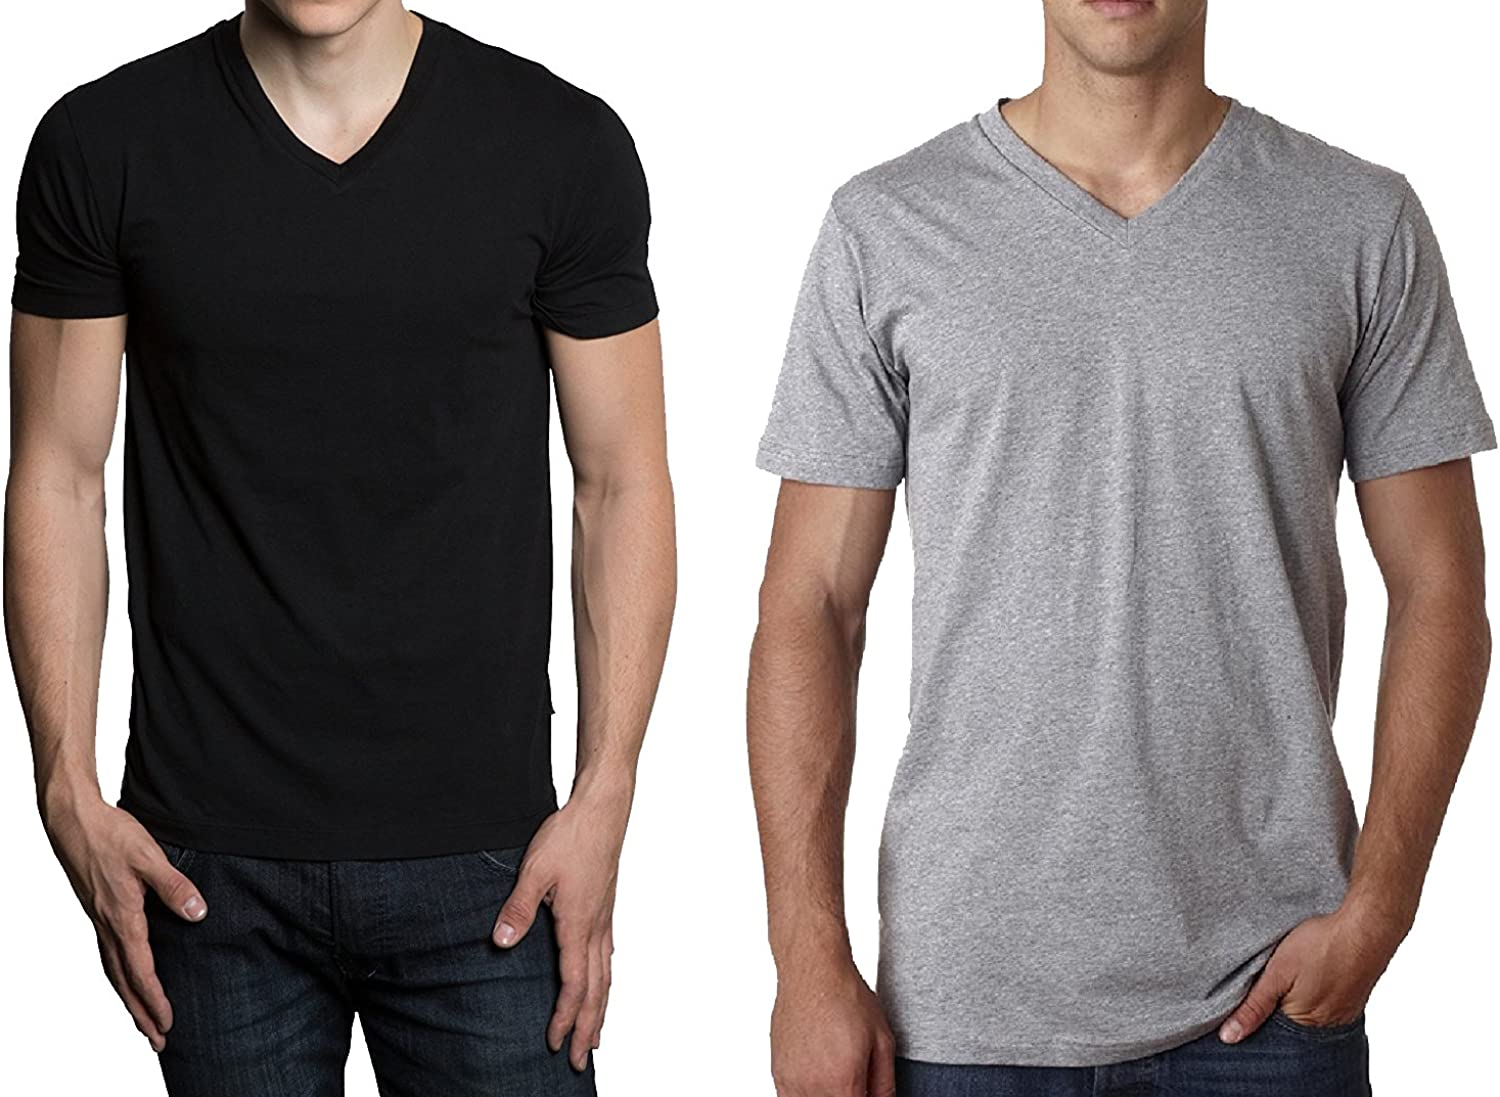 Hanes Men's 3-Pack V-Neck T-Shirt: Clothing